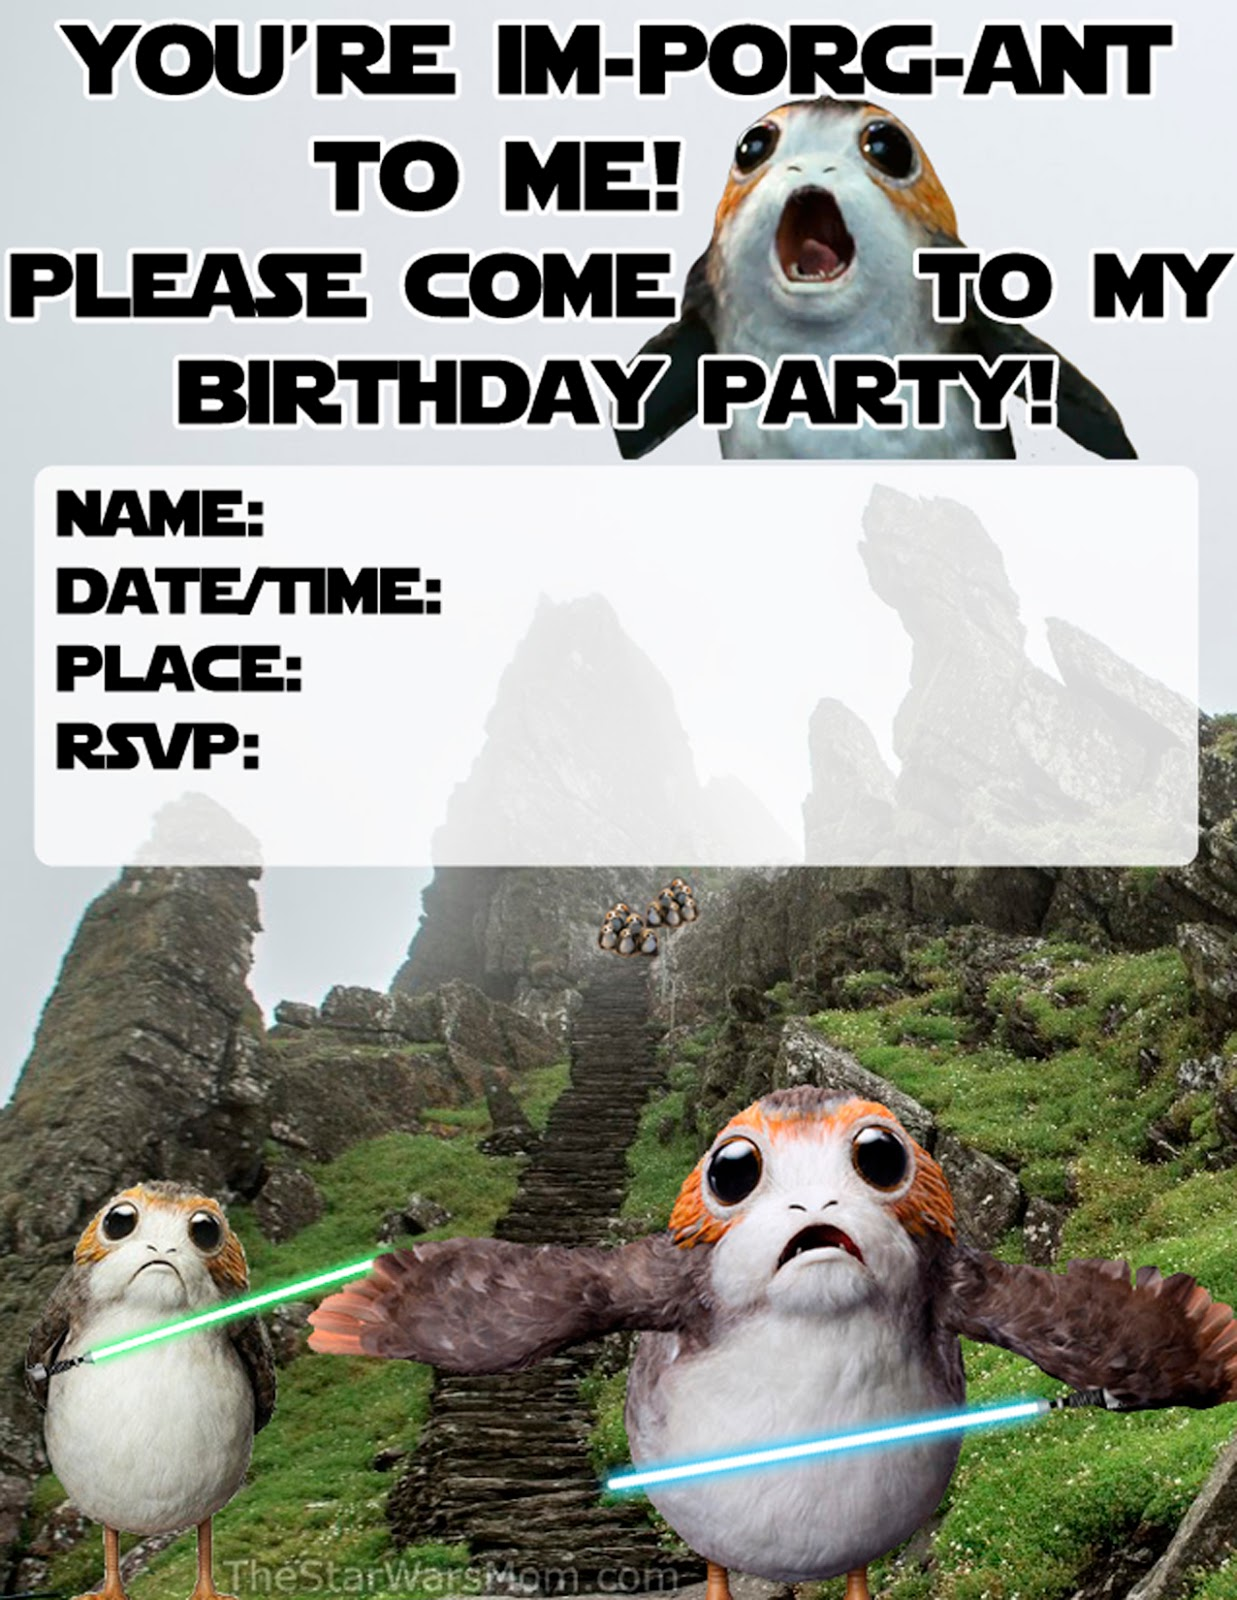 Star Wars Porg Birthday Party Invitation